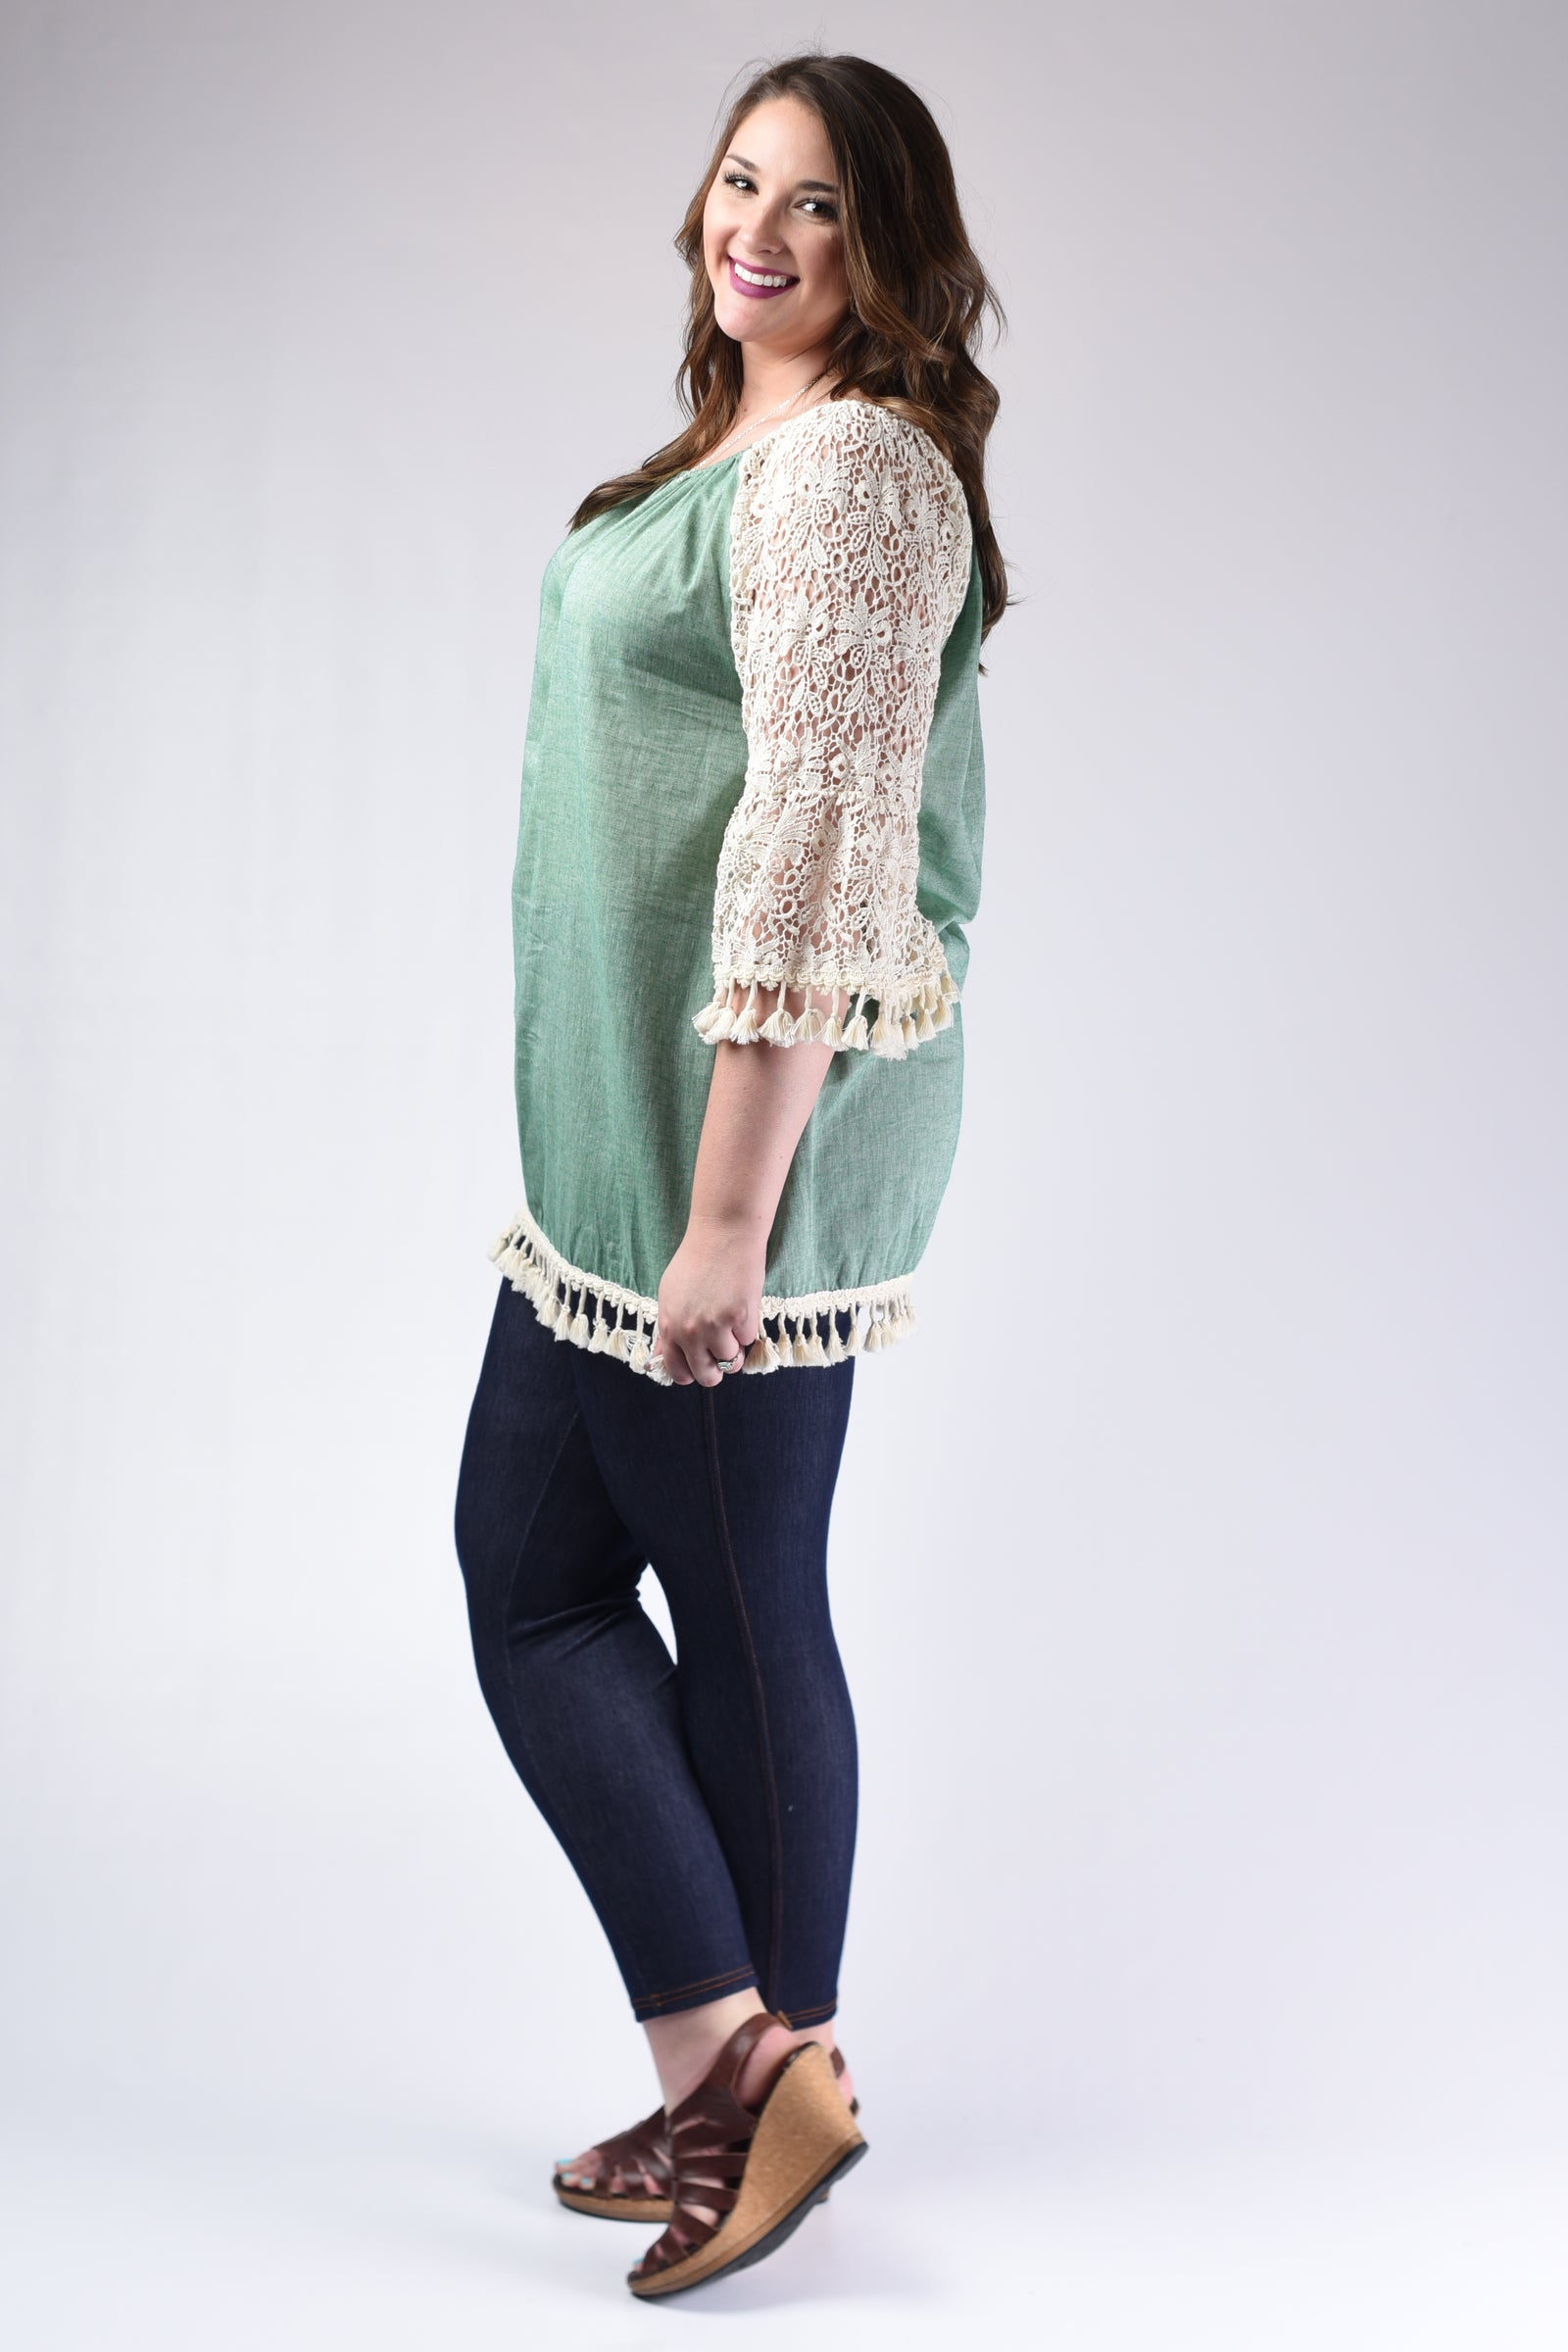 Cool Emerald Crochet Sleeve Tunic Top - www.mycurvystore.com - Curvy Boutique - Plus Size